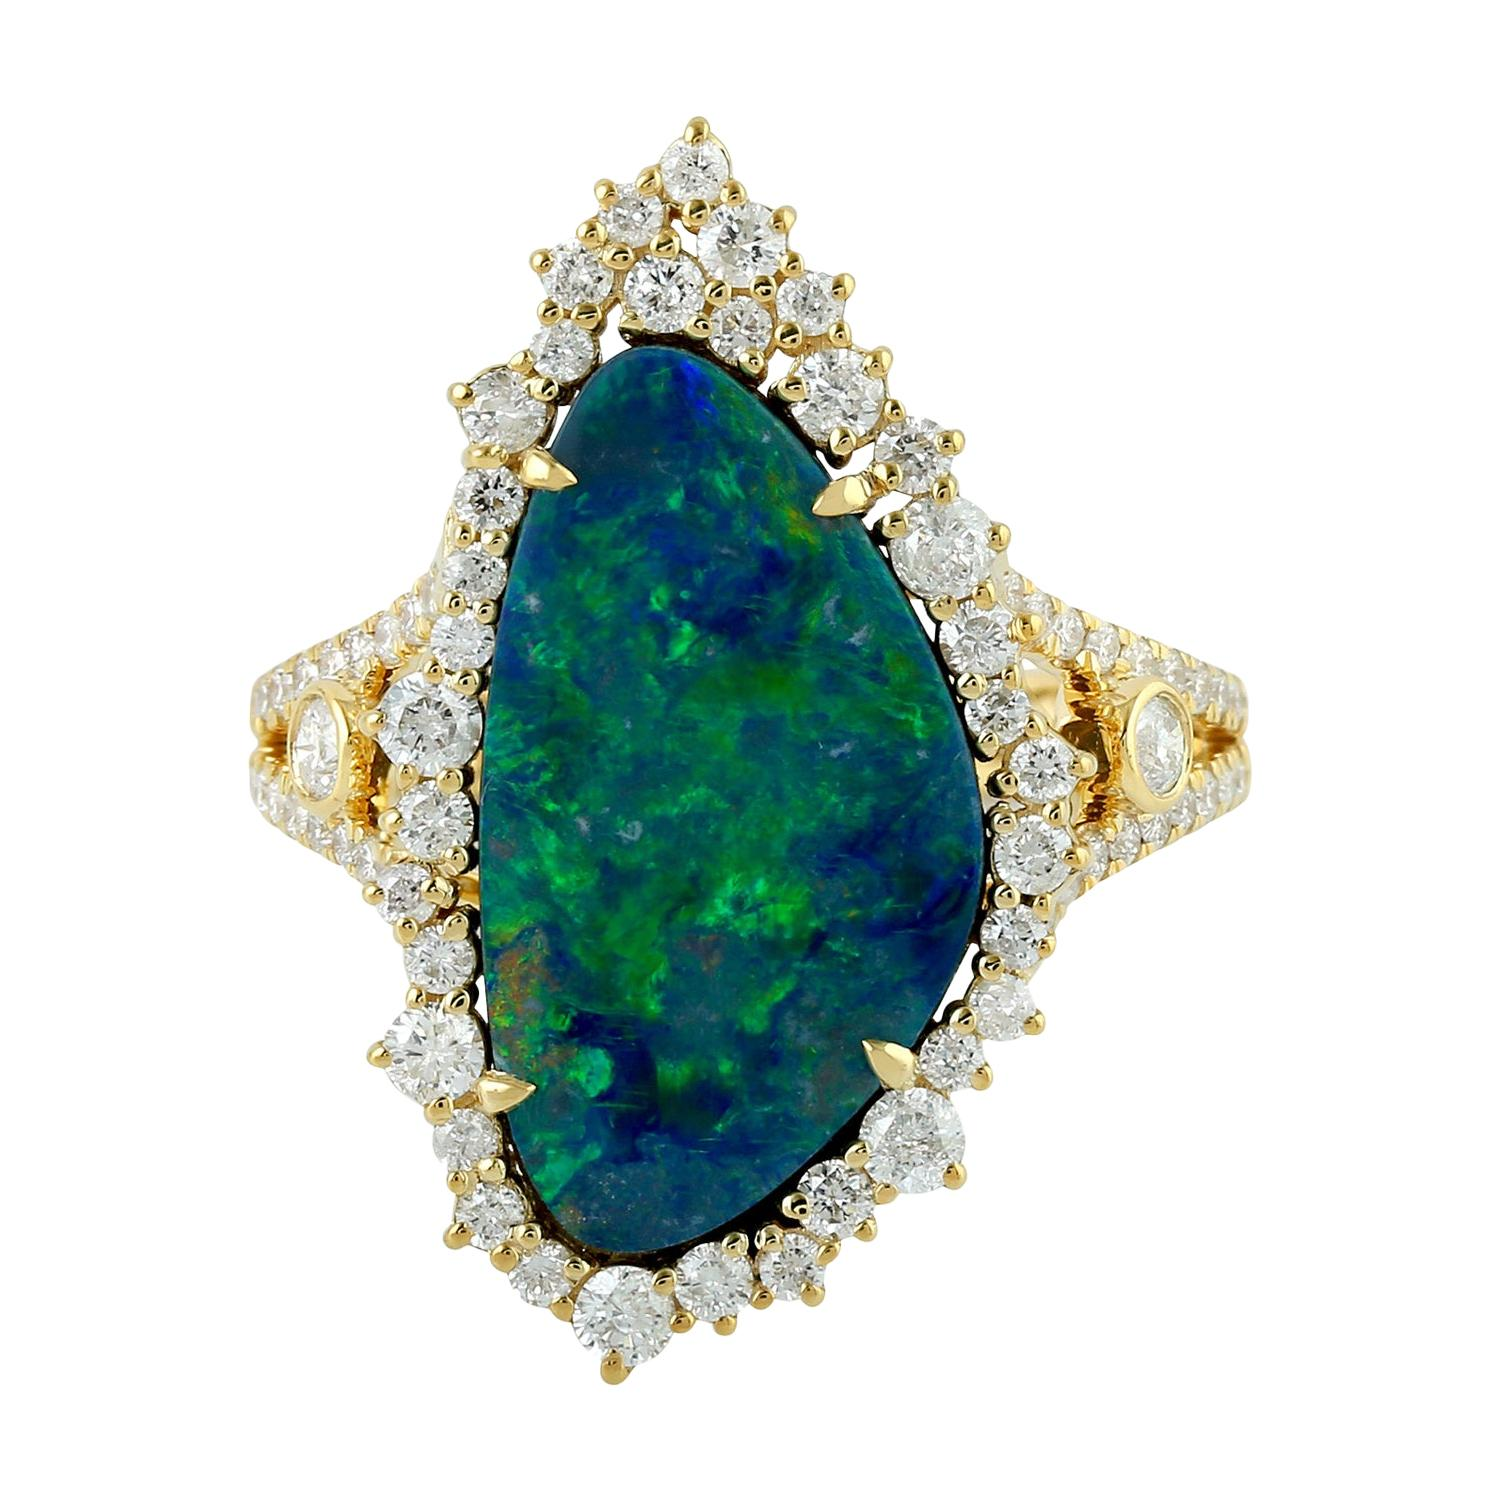 Stunning Opal and Diamond Ring in 18k Yellow Gold